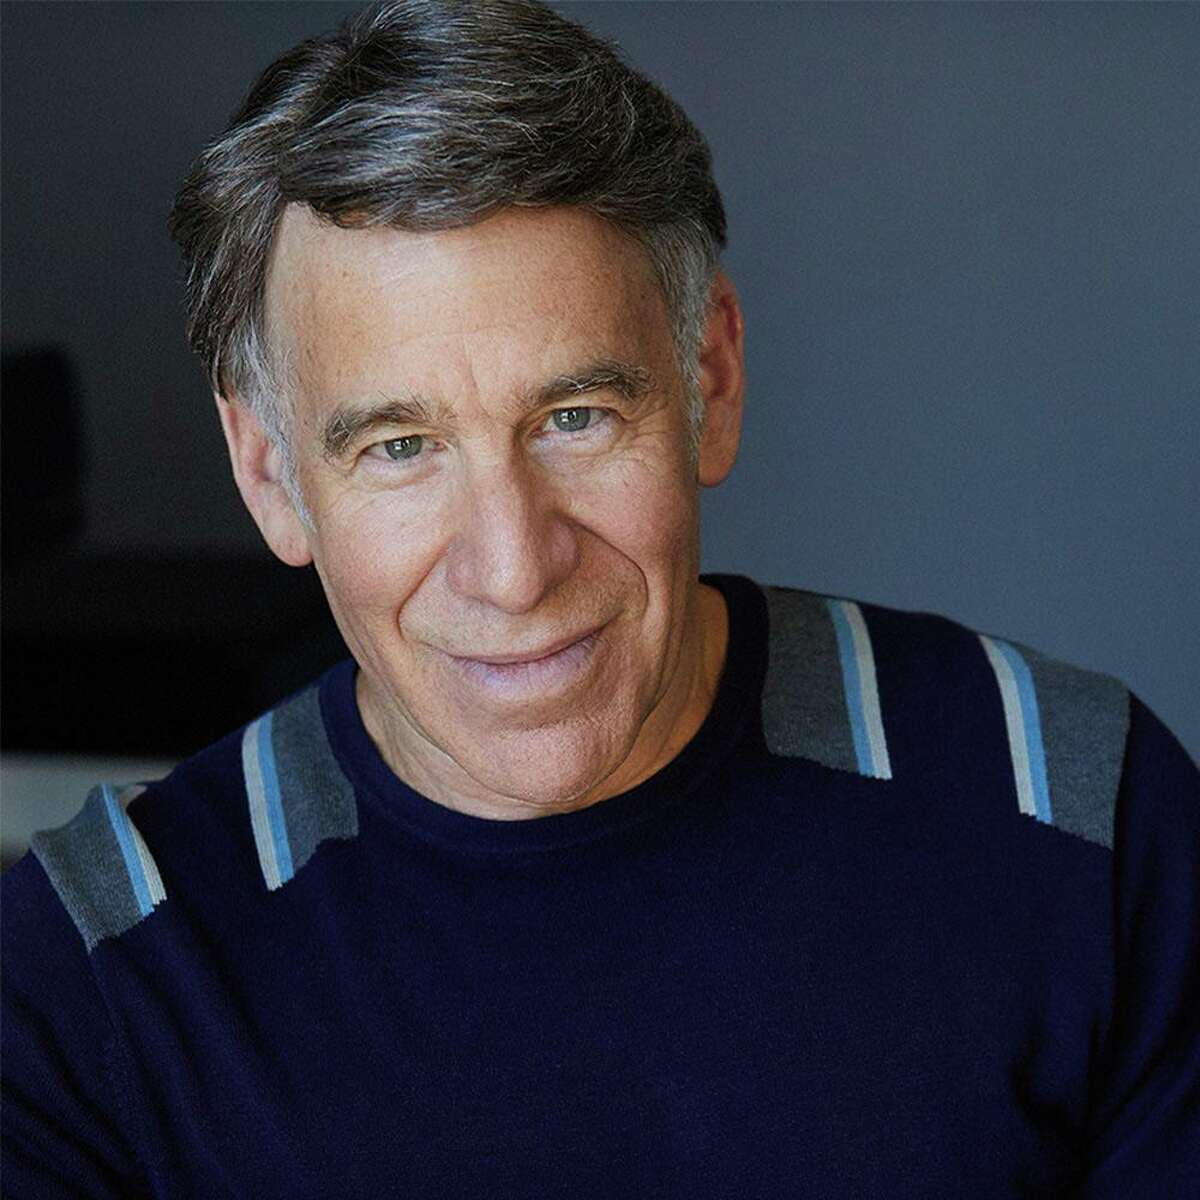 Broadway composer Stephen Schwartz will participate in Toast to Broadway on Nov. 28.